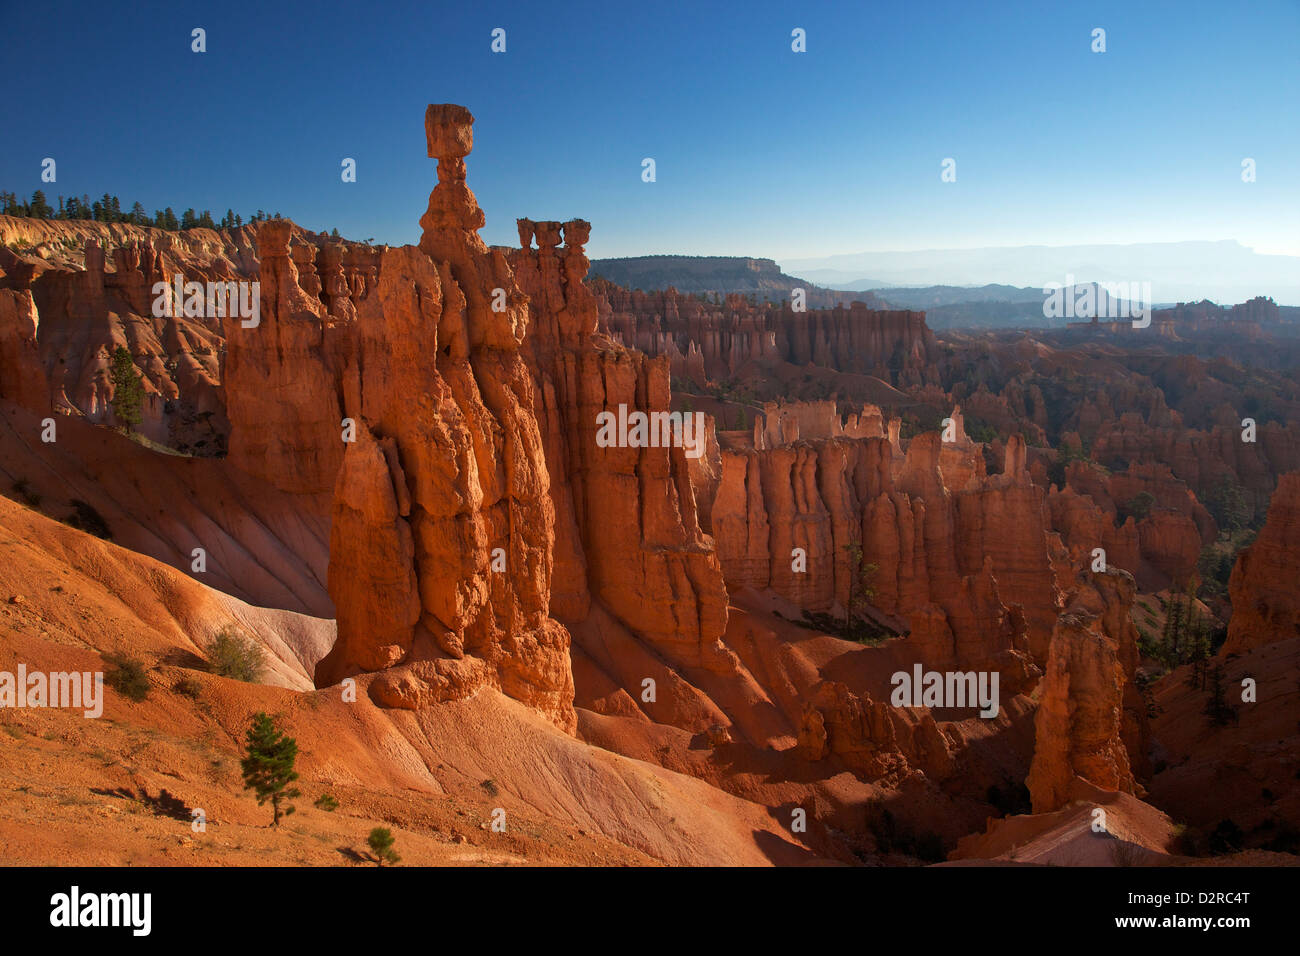 Thor's Hammer in early morning from Sunset Point, Bryce Canyon National Park, Utah, United States of America, - Stock Image